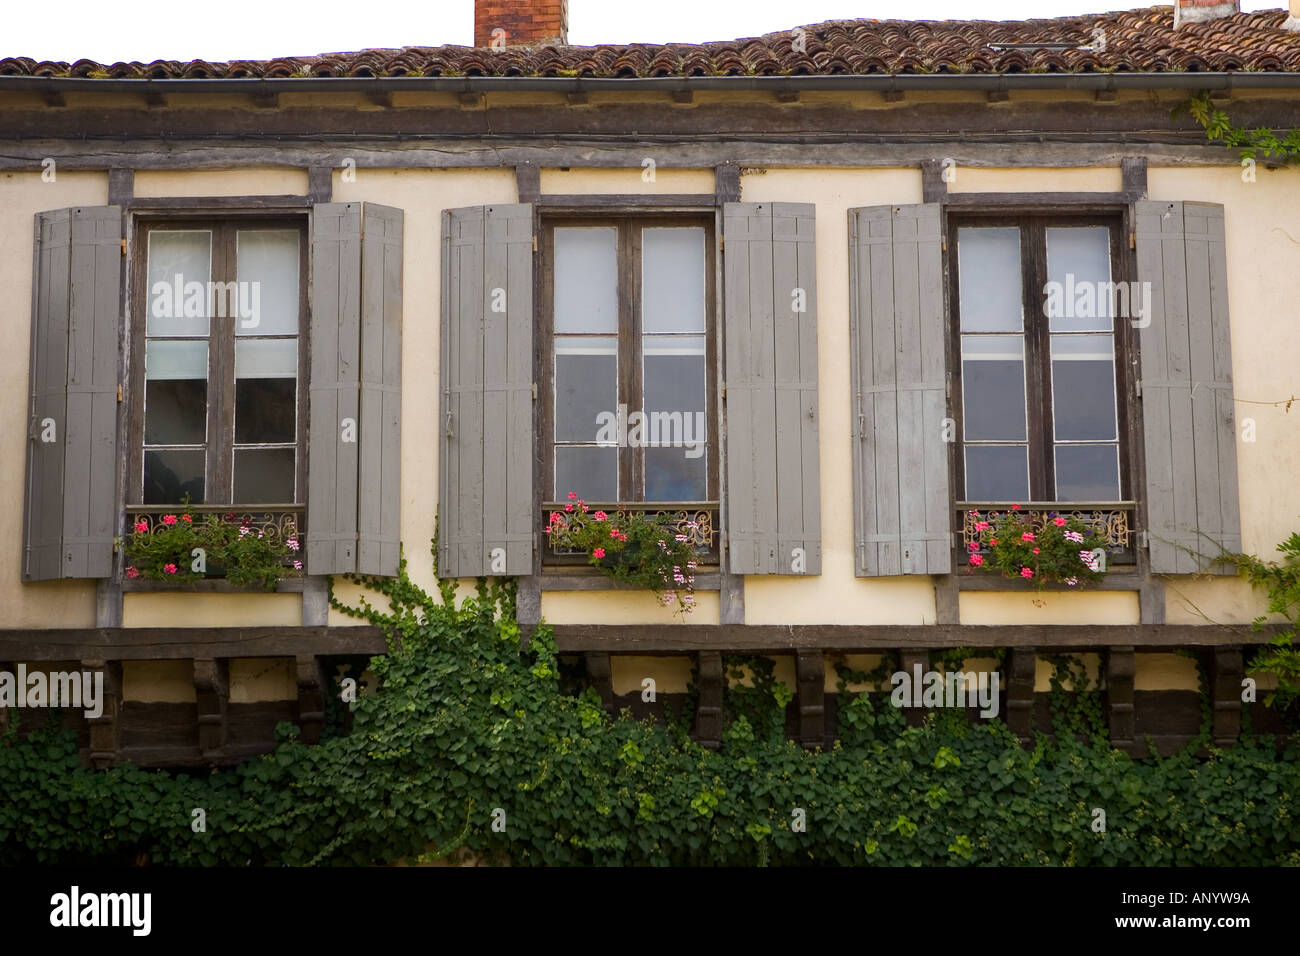 Window shutters Labastide d Armagnac France - Stock Image